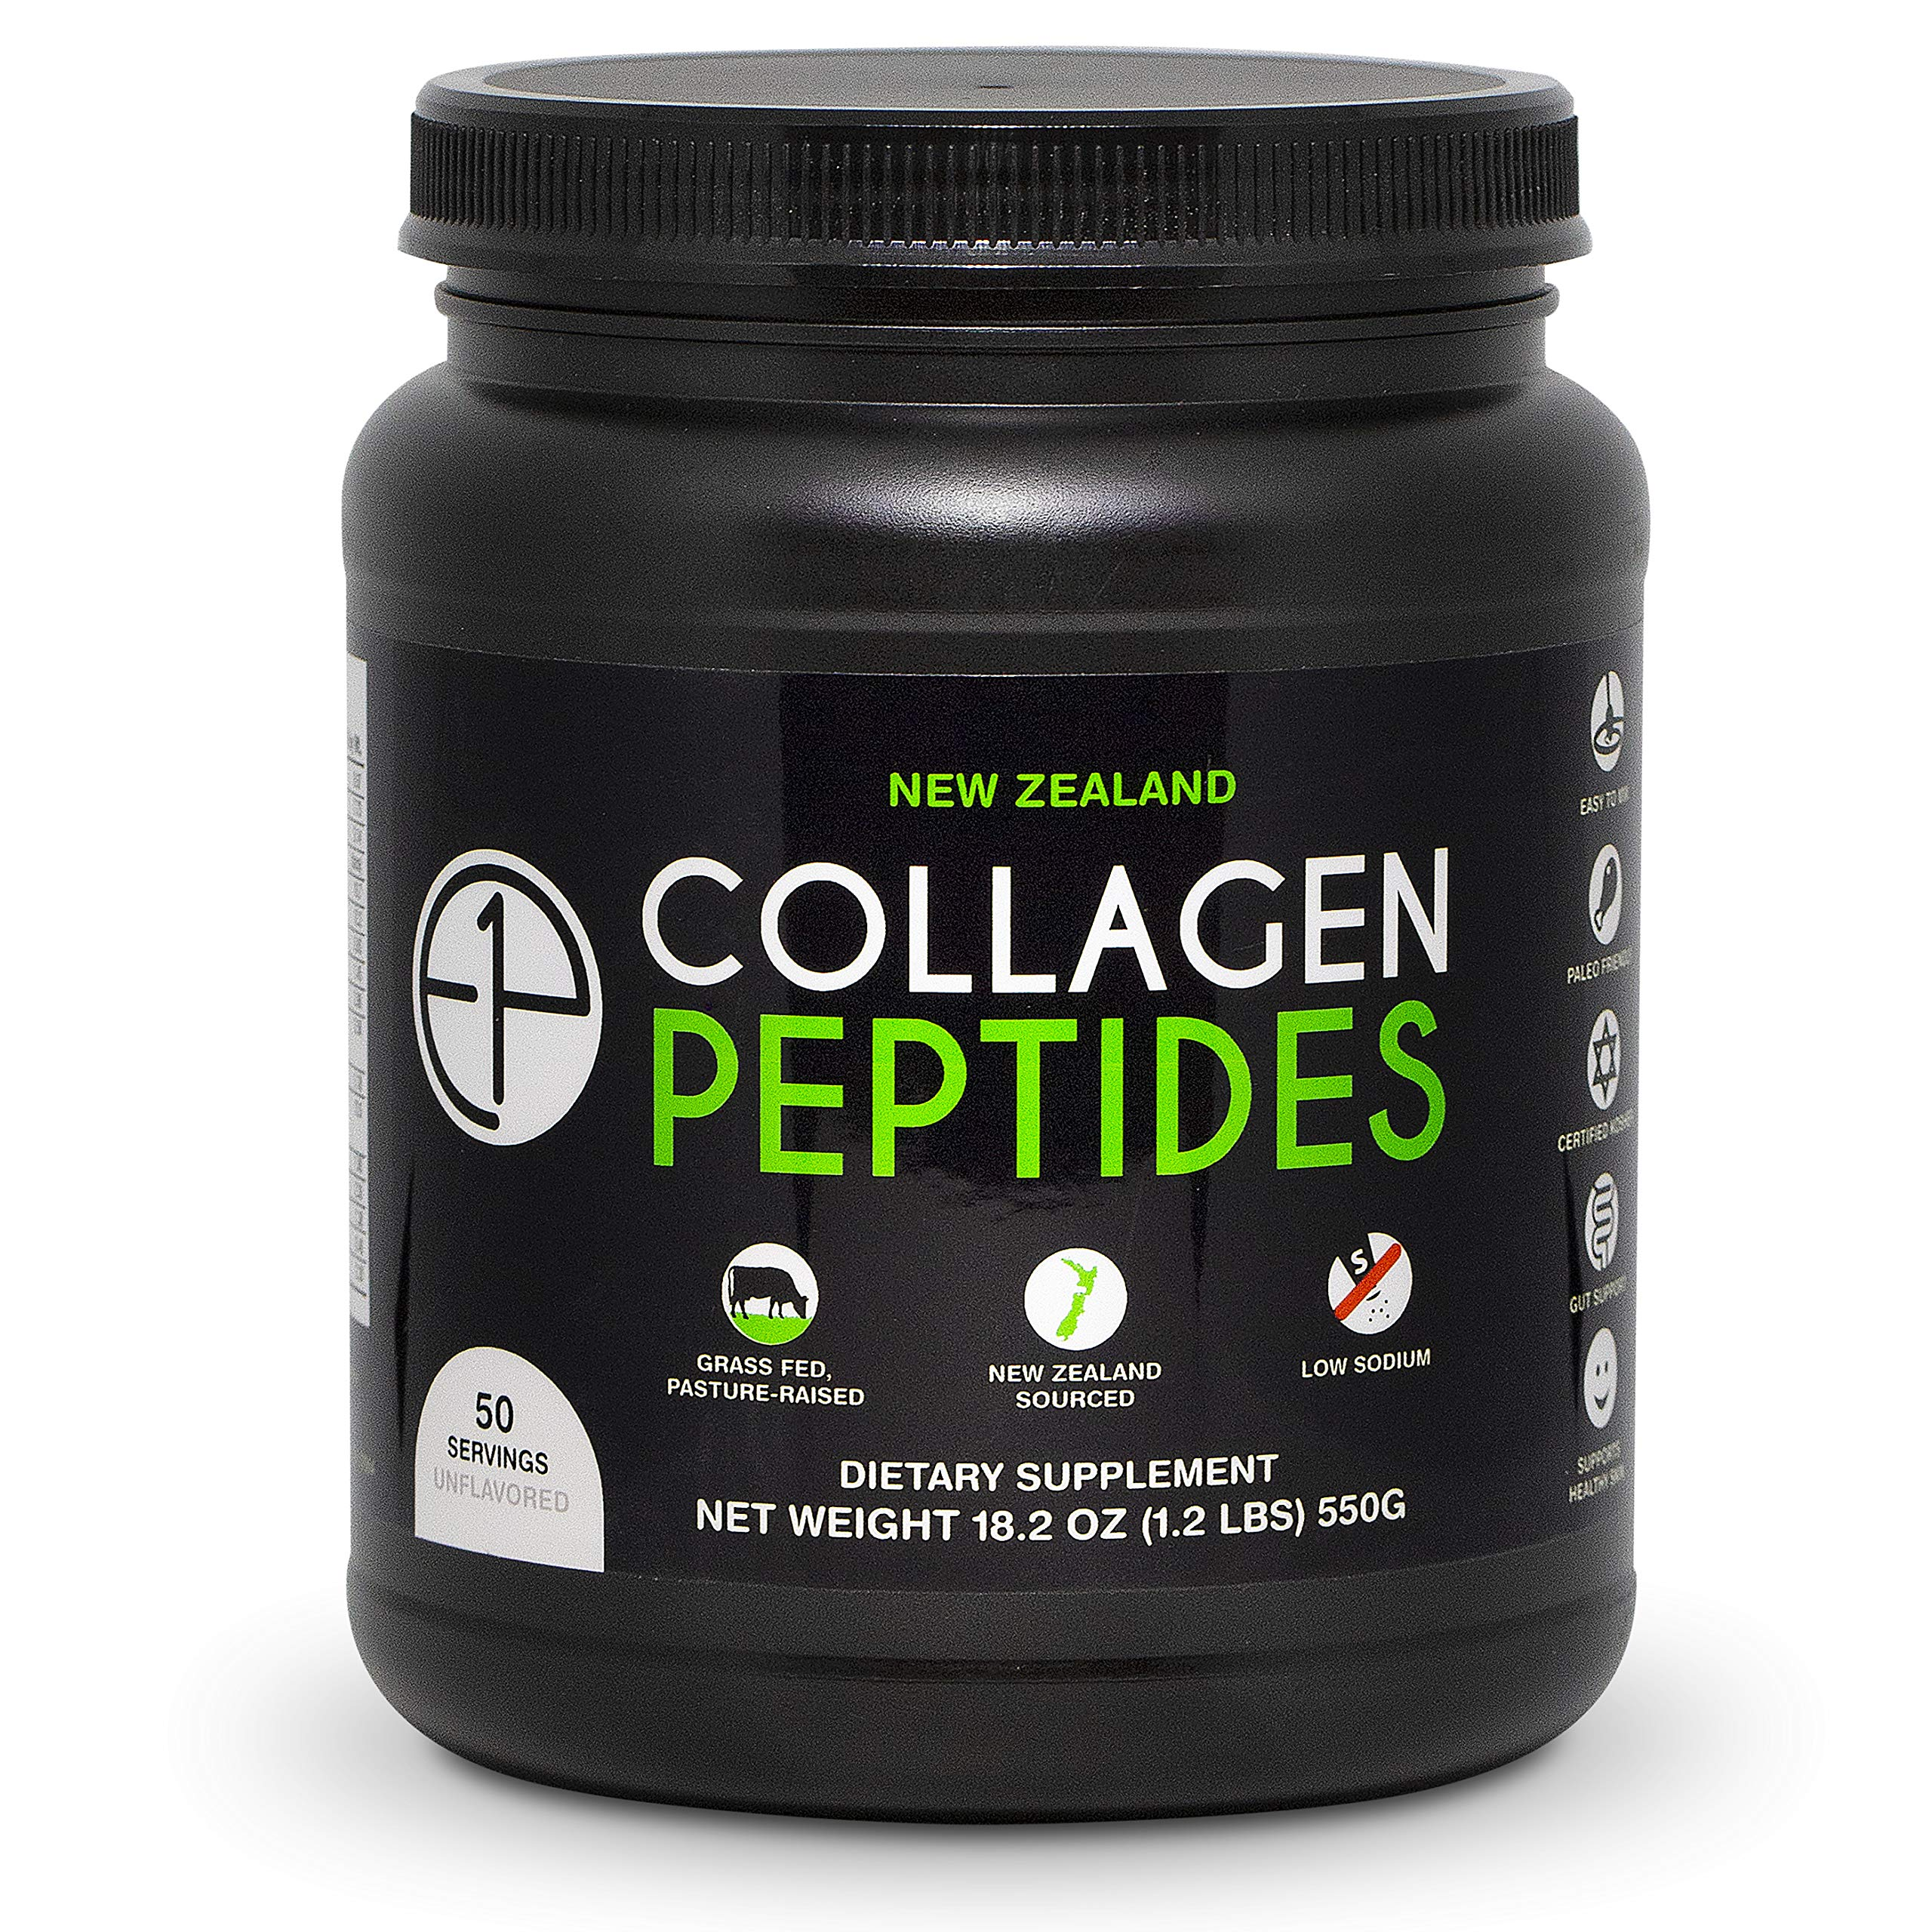 New Zealand Collagen Peptides Powder (18.2oz) 50 Servings Unflavored, Grass-Fed, Pasture-Raised, Non-GMO by E1P